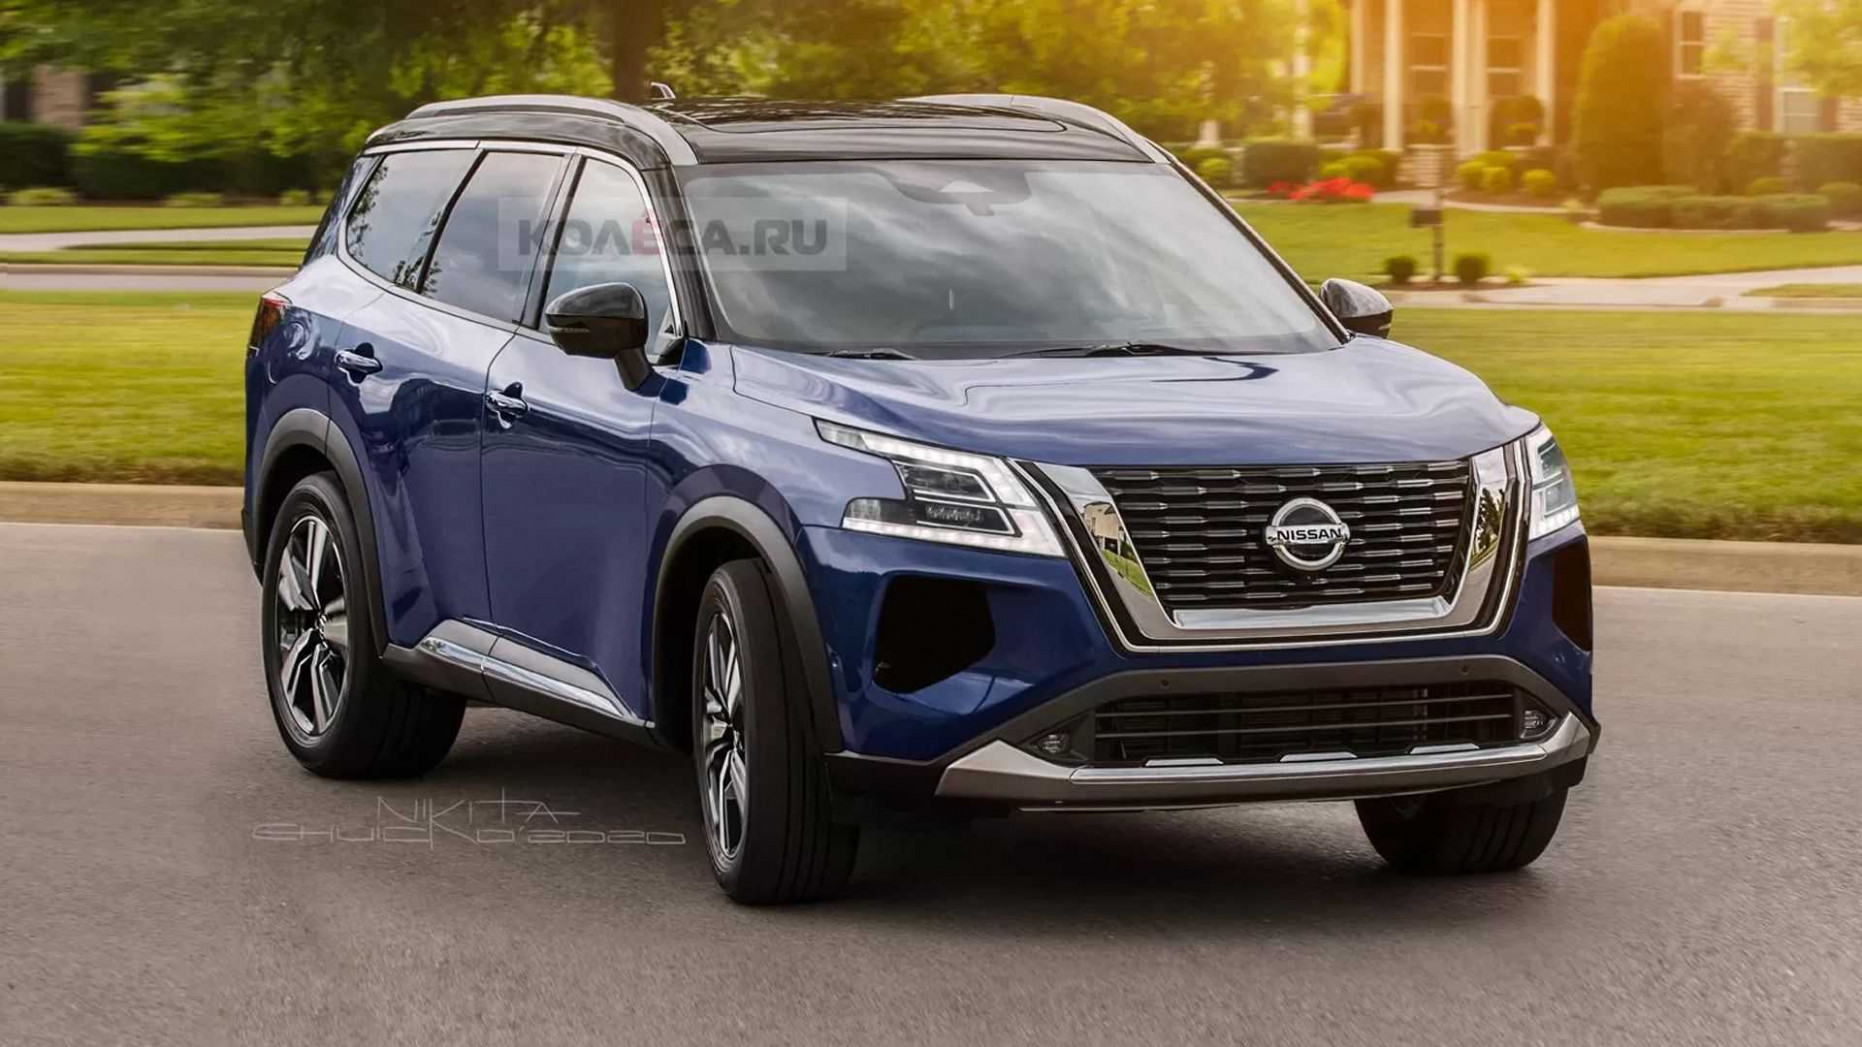 Price When Does The 2022 Nissan Armada Come Out